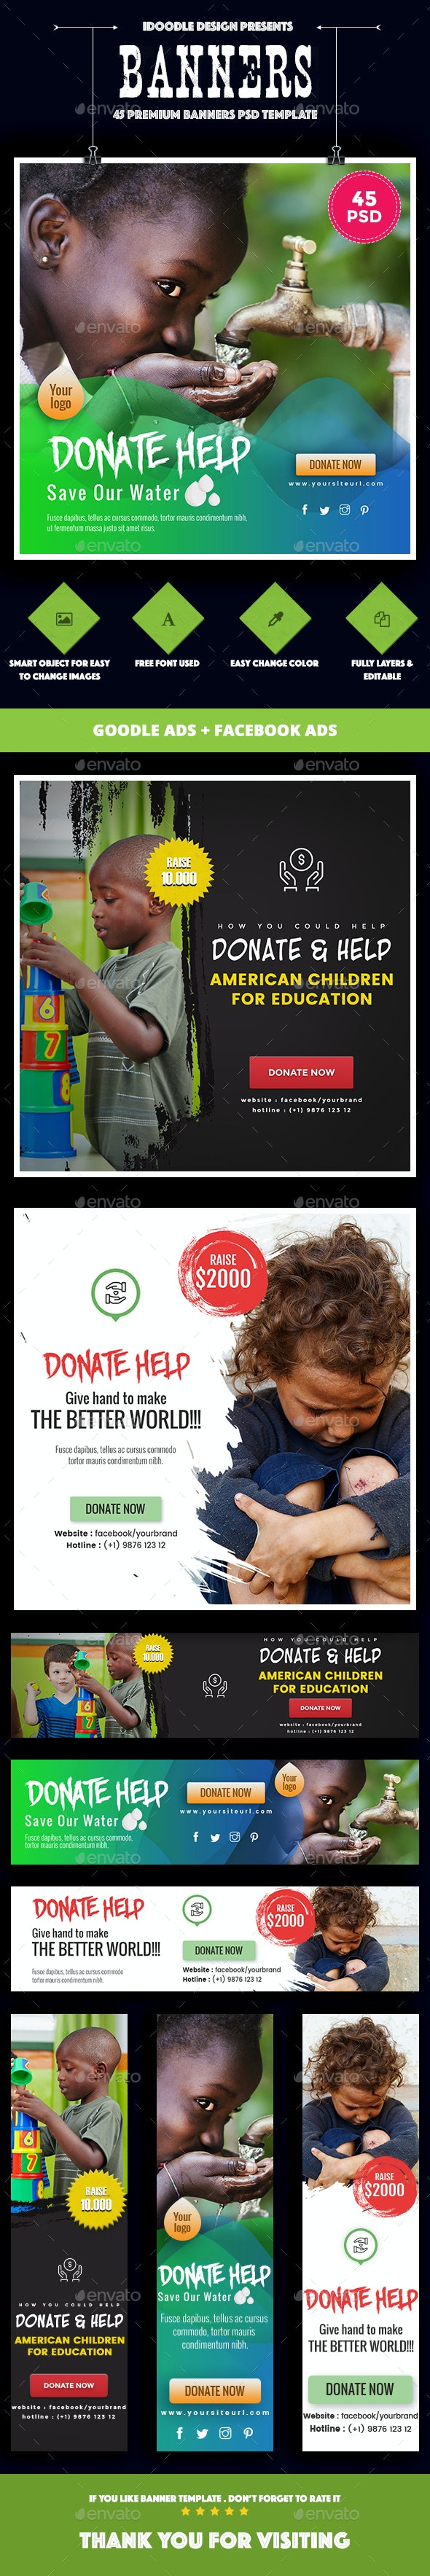 Bundle - Nonprofit - NGO, Charity/Fundraising Banner Ads [45 PSD] - Banners & Ads Web Elements